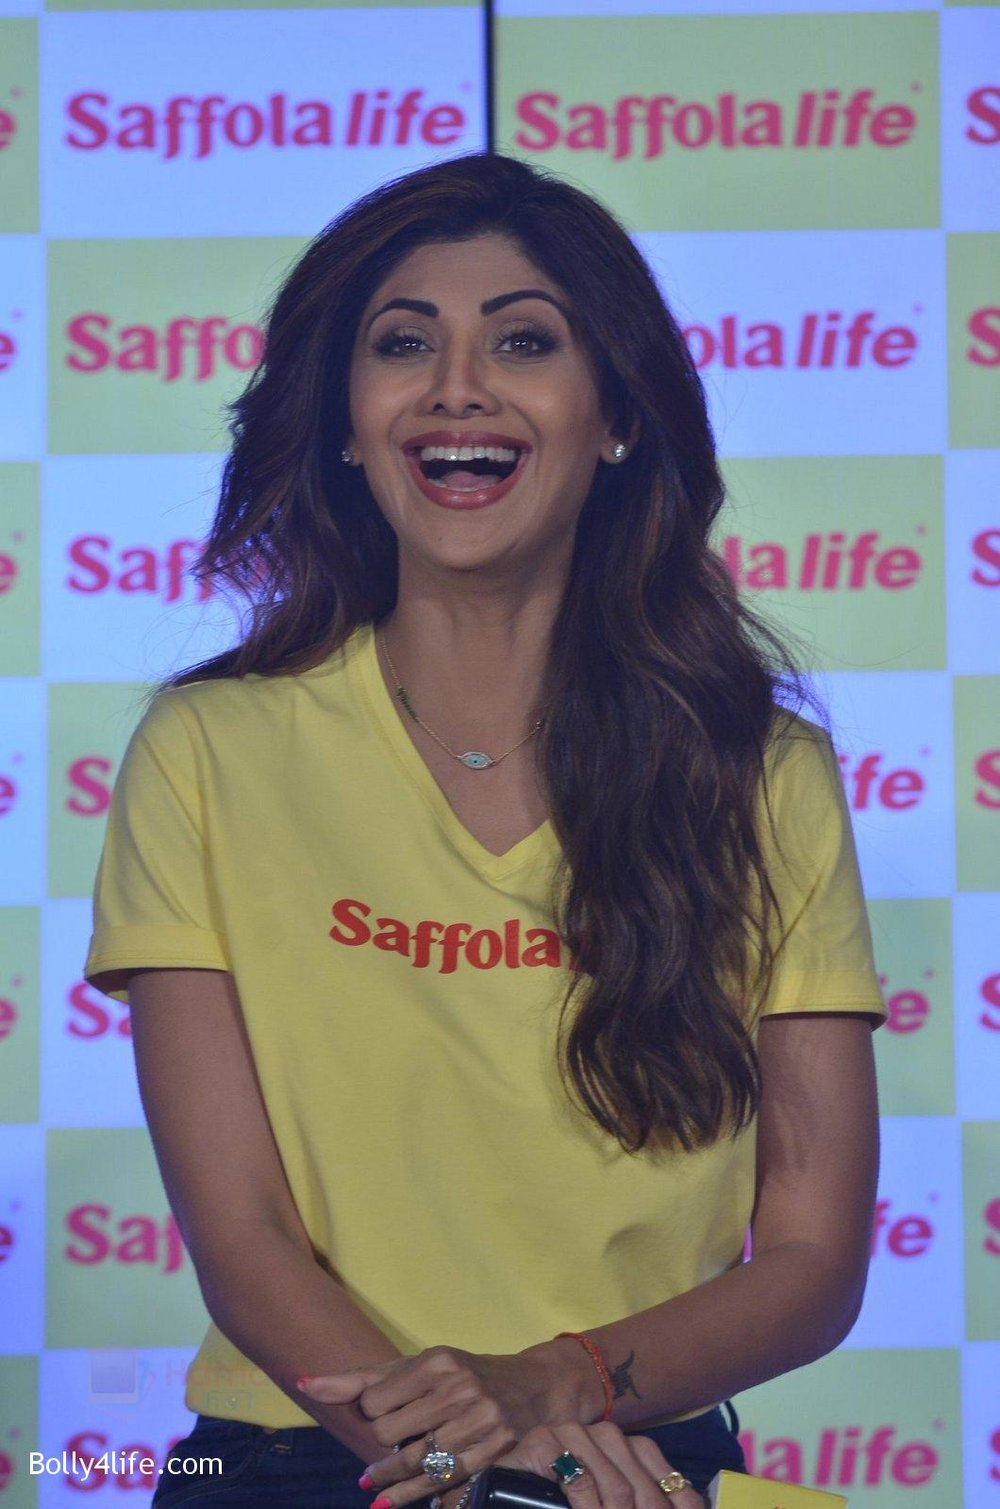 Shilpa-Shetty-during-the-World-Heart-Day-program-organized-by-Saffola-Life-in-Mumbai-on-28th-Sept-2016-62_57ec050b447c1.jpg